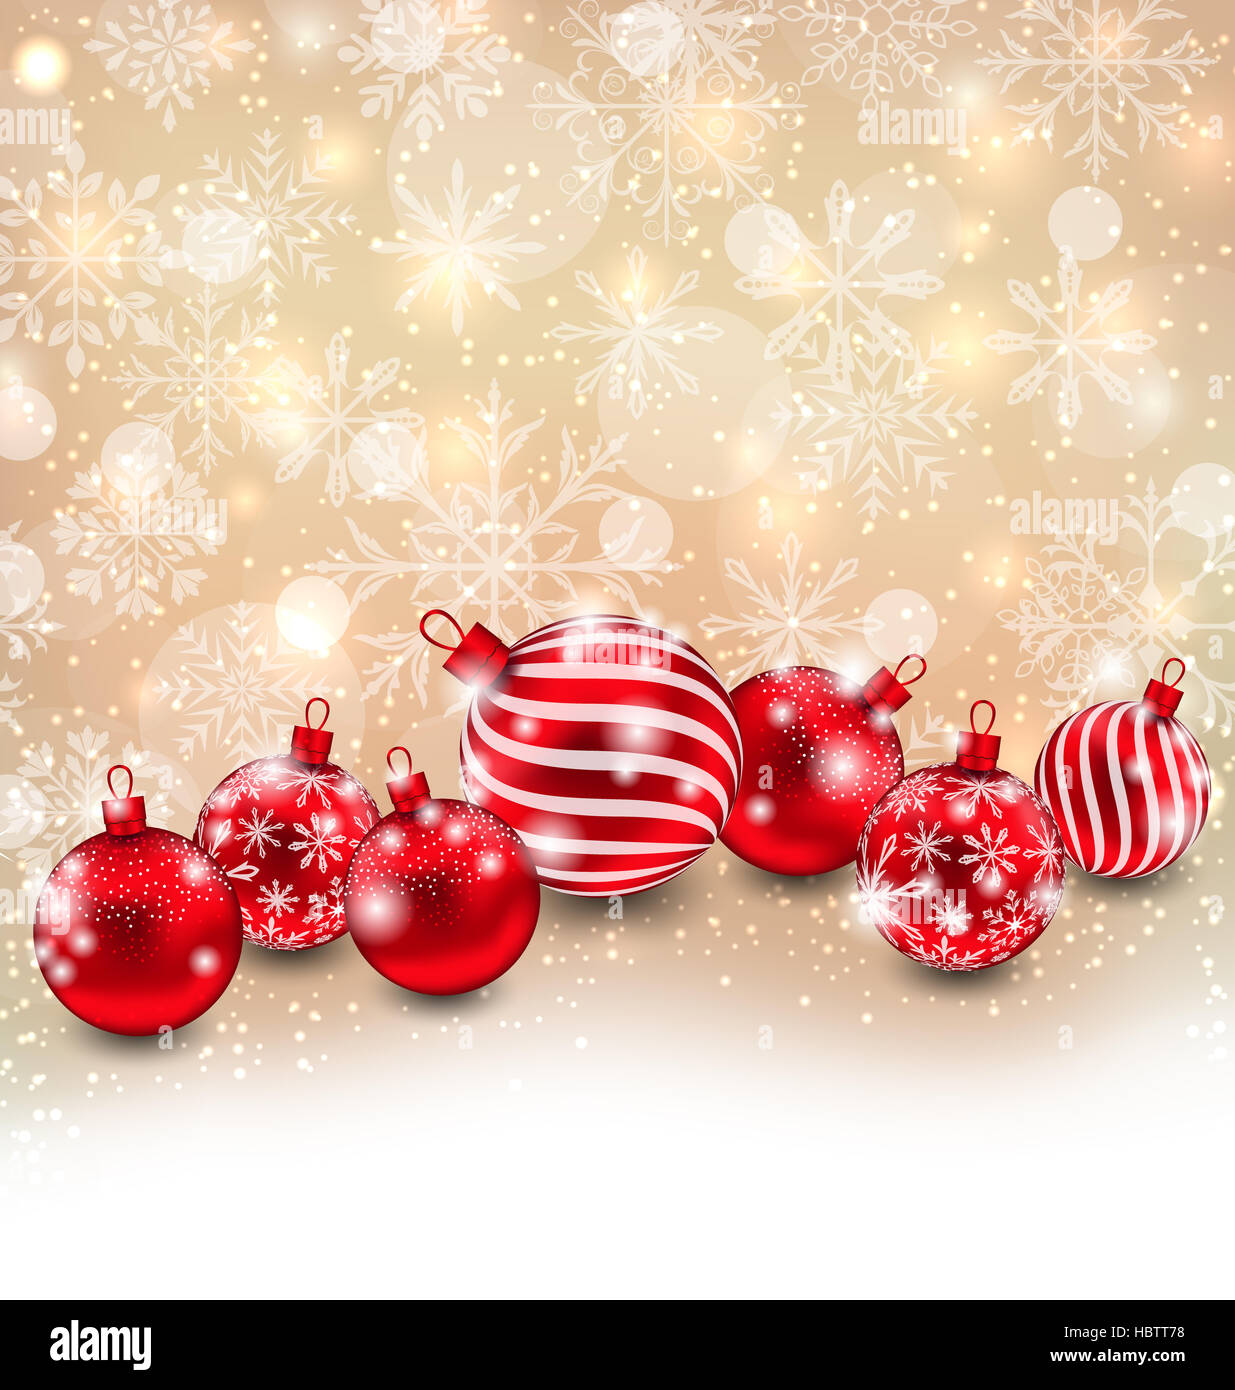 Christmas Abstract Shimmering Background - Stock Image